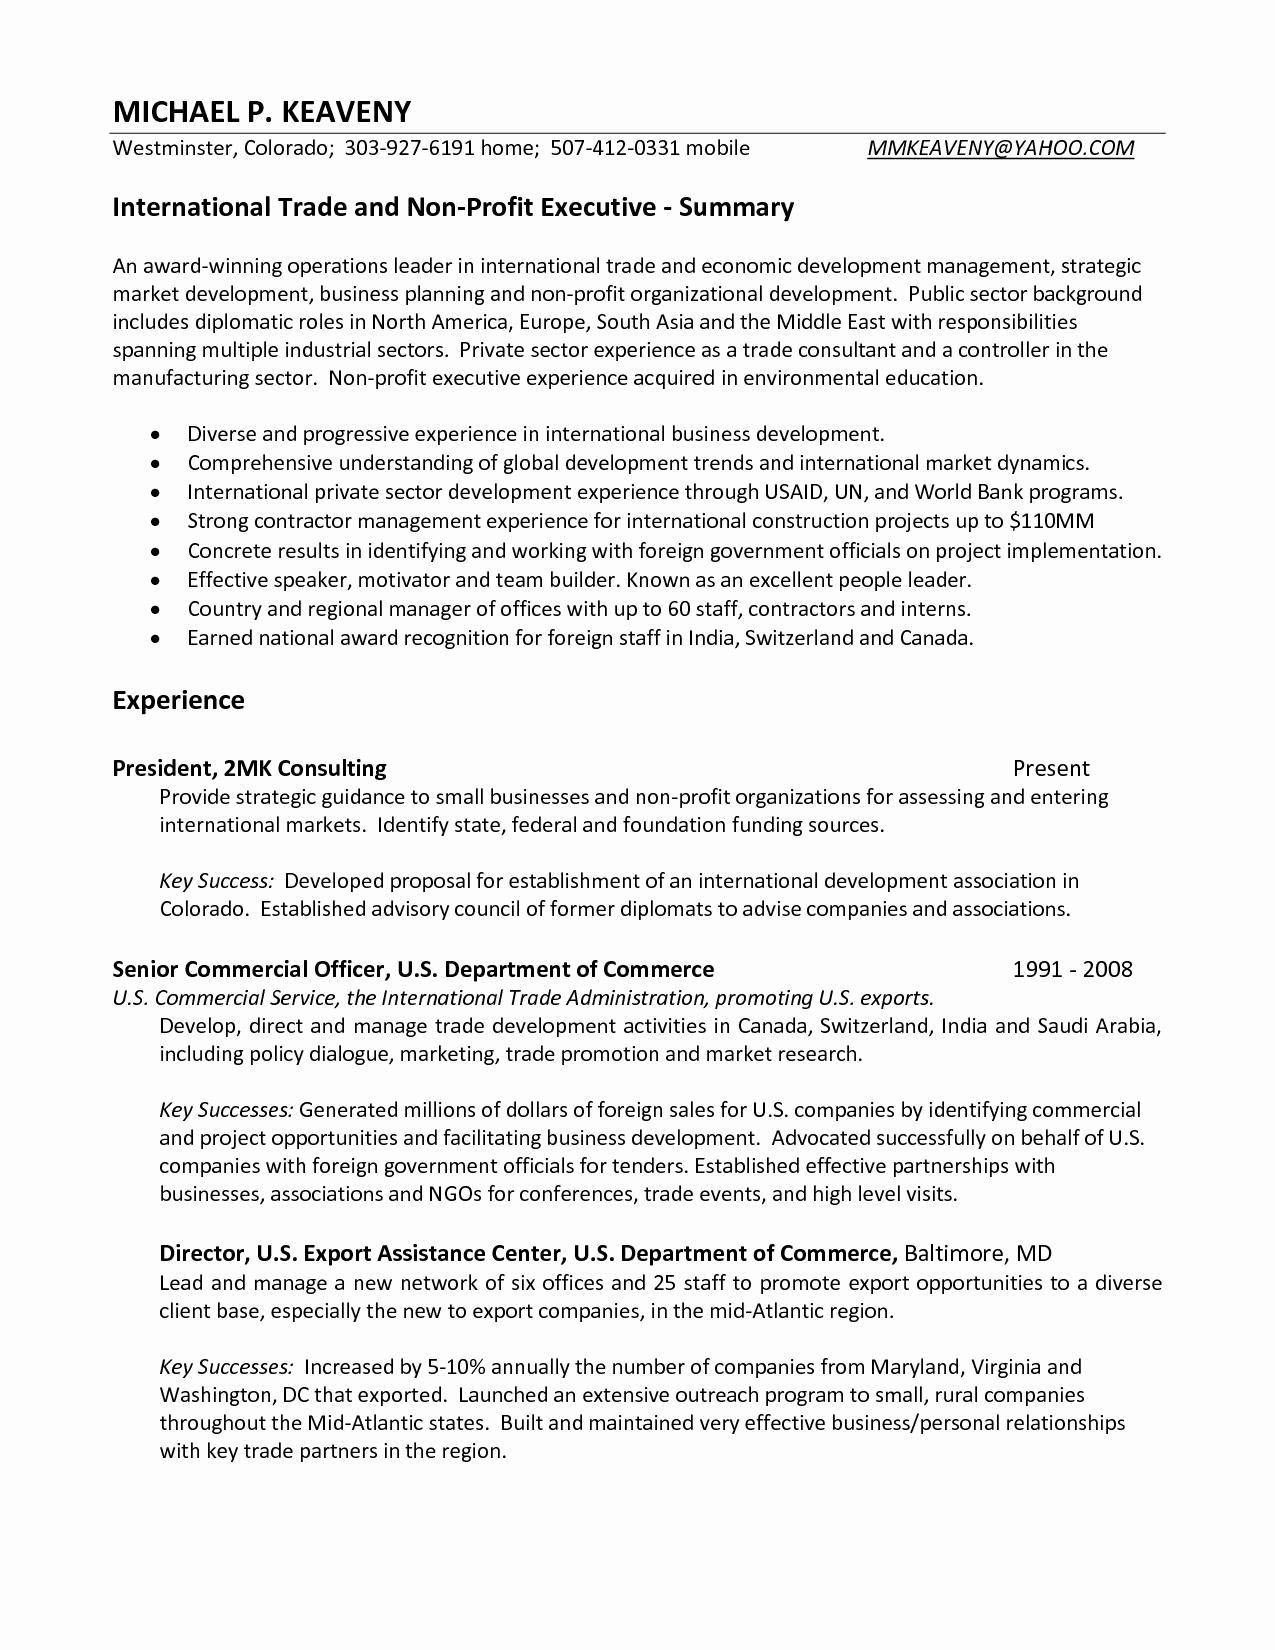 Resume Templates for Manufacturing Jobs - Business Resume Examples Fresh Resume or Cv Unique American Resume